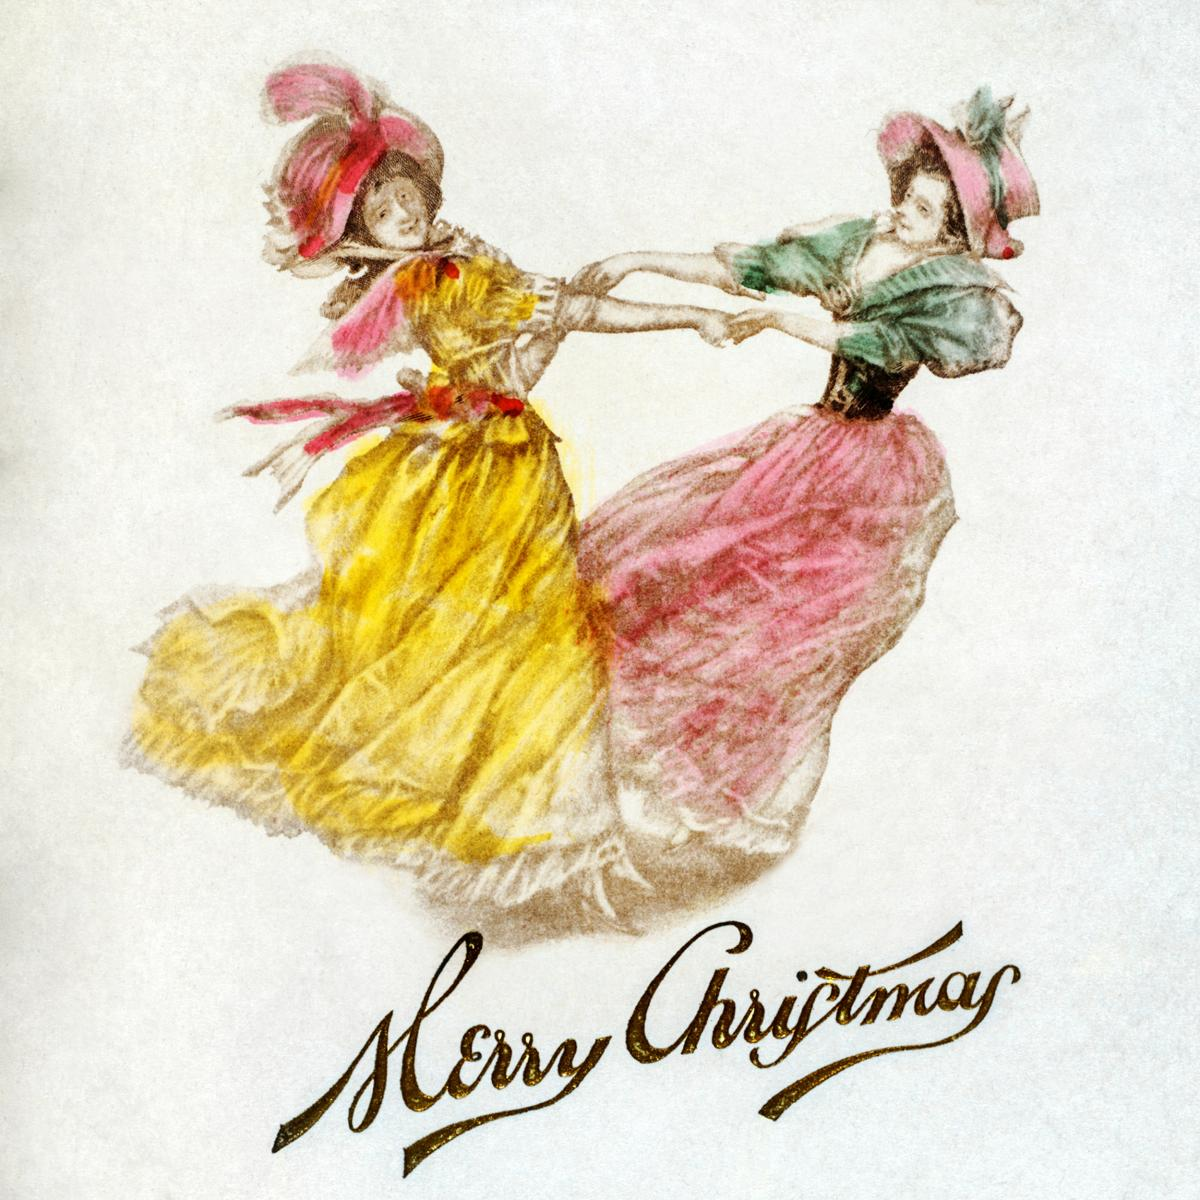 Christmas Dinner Card with Women Dancing (1900) by Battery Park Hotel, Asheville, NYC. Original from The New York Public Library.